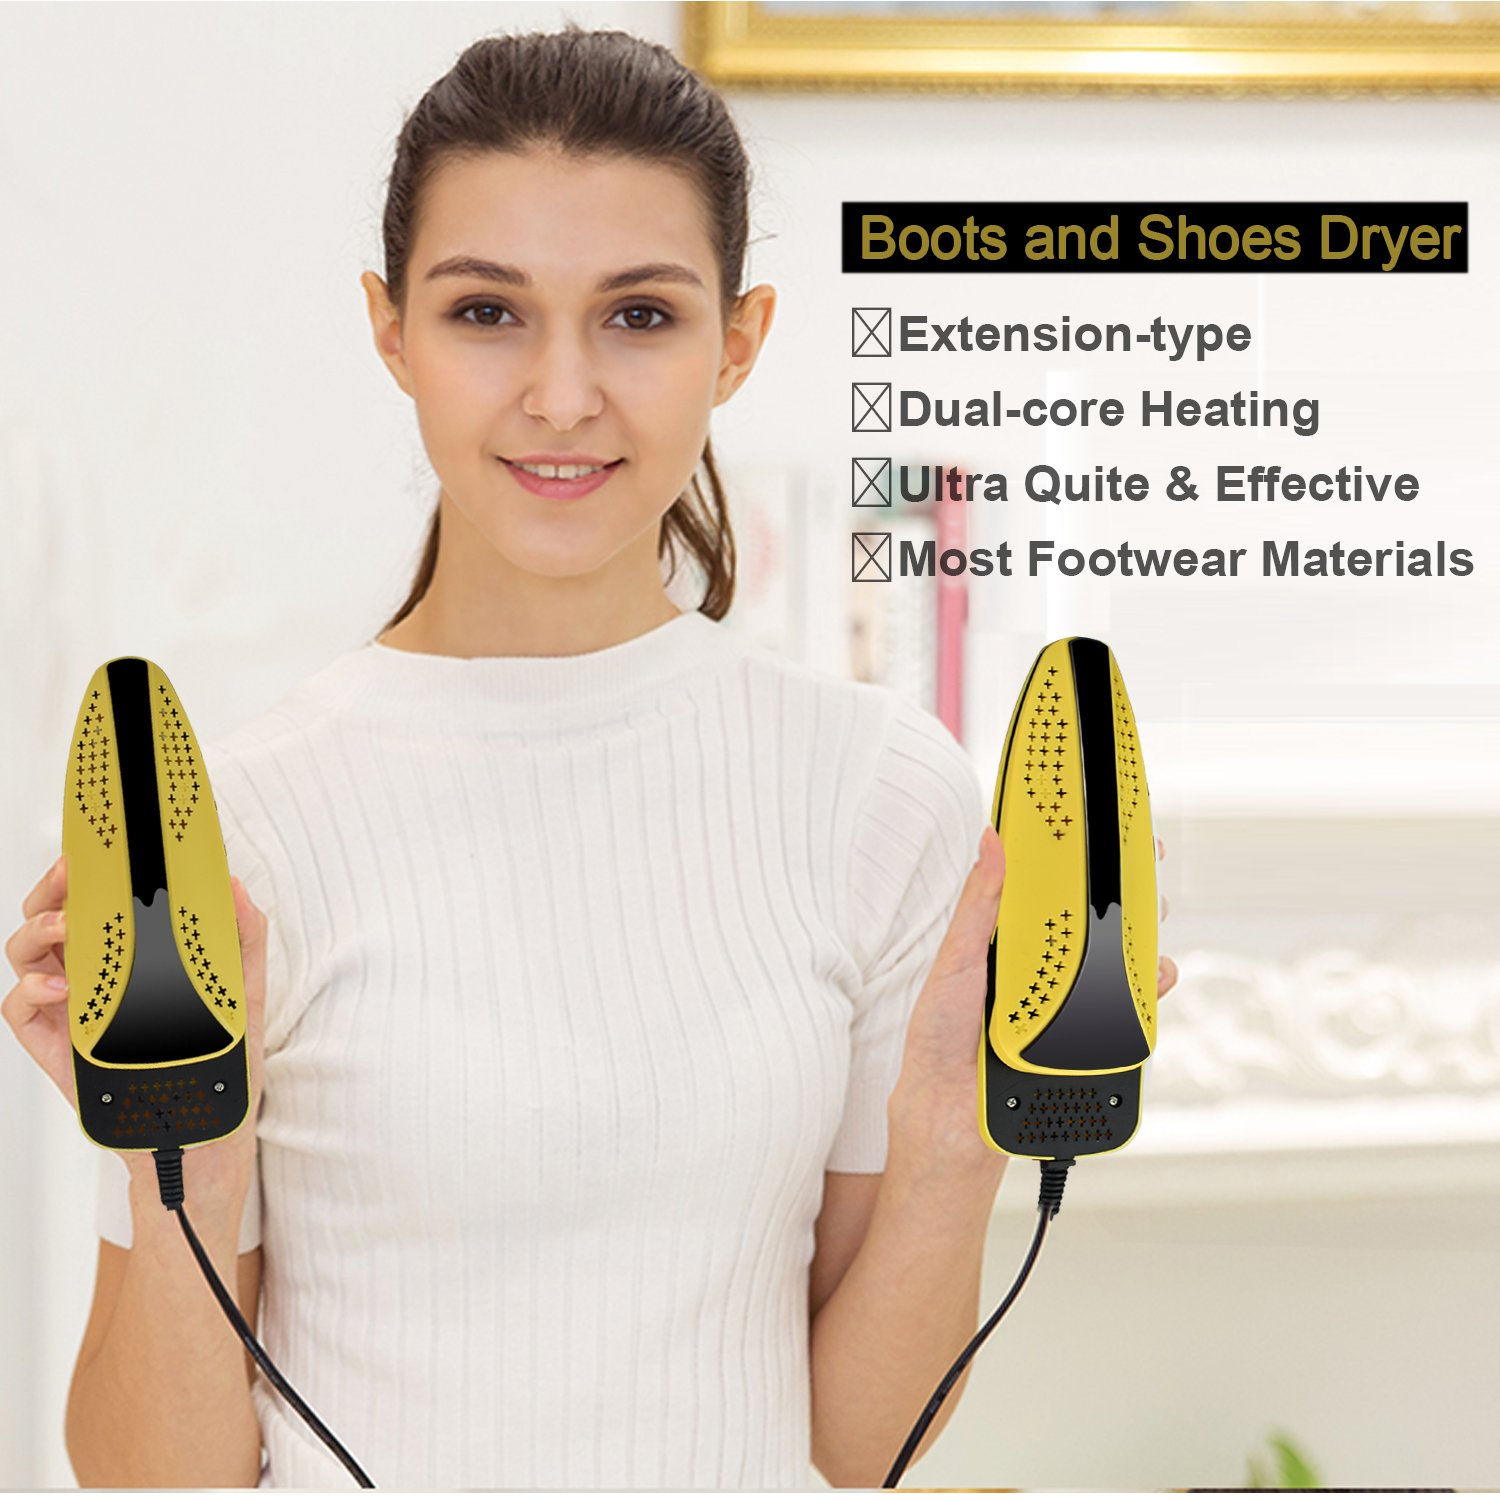 Electric Portable Foot Dryer For Eliminate Bad Odor and Sanitize SmartElite Shoe Dryer Boots Dryer With Timer Settings